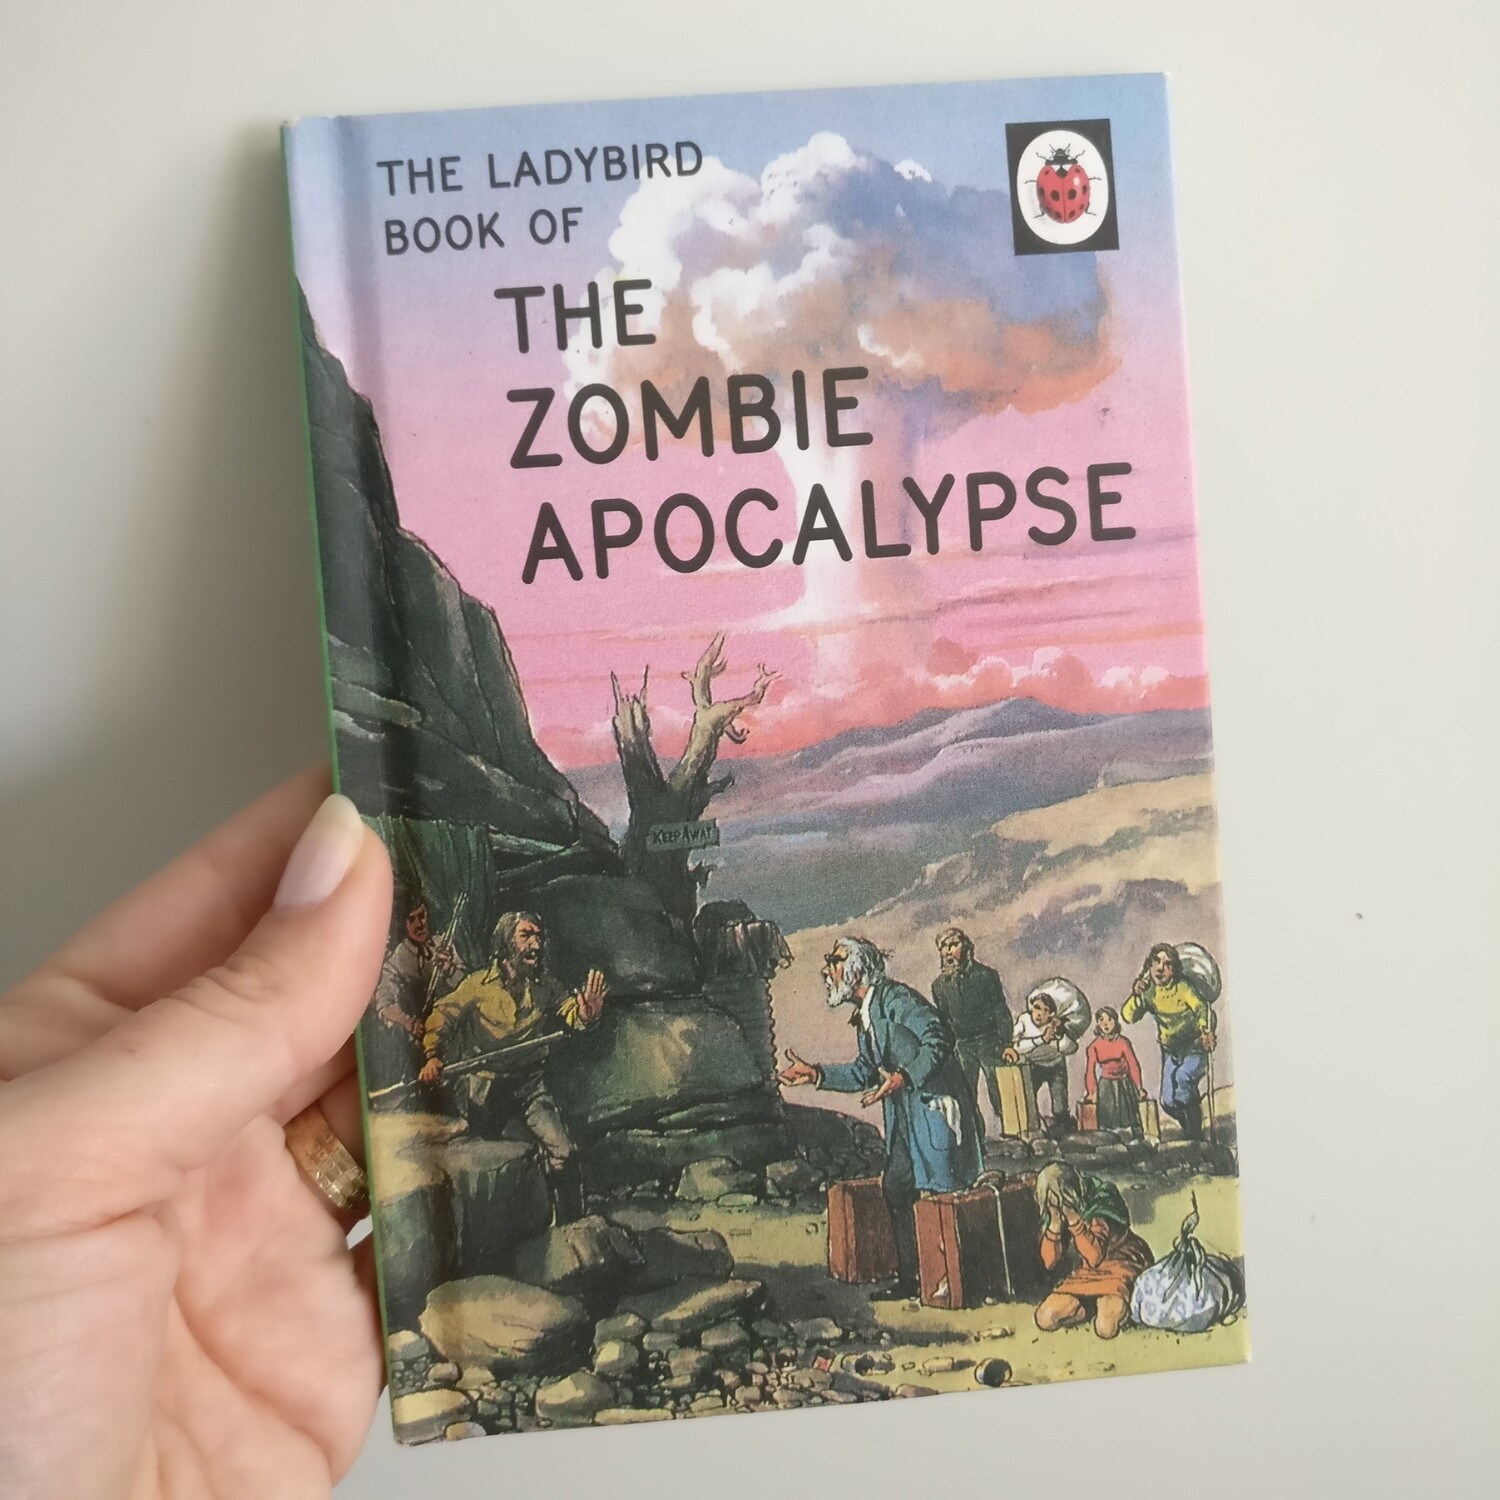 The Zombie Apocalypse Notebook - Ladybird books for grown ups